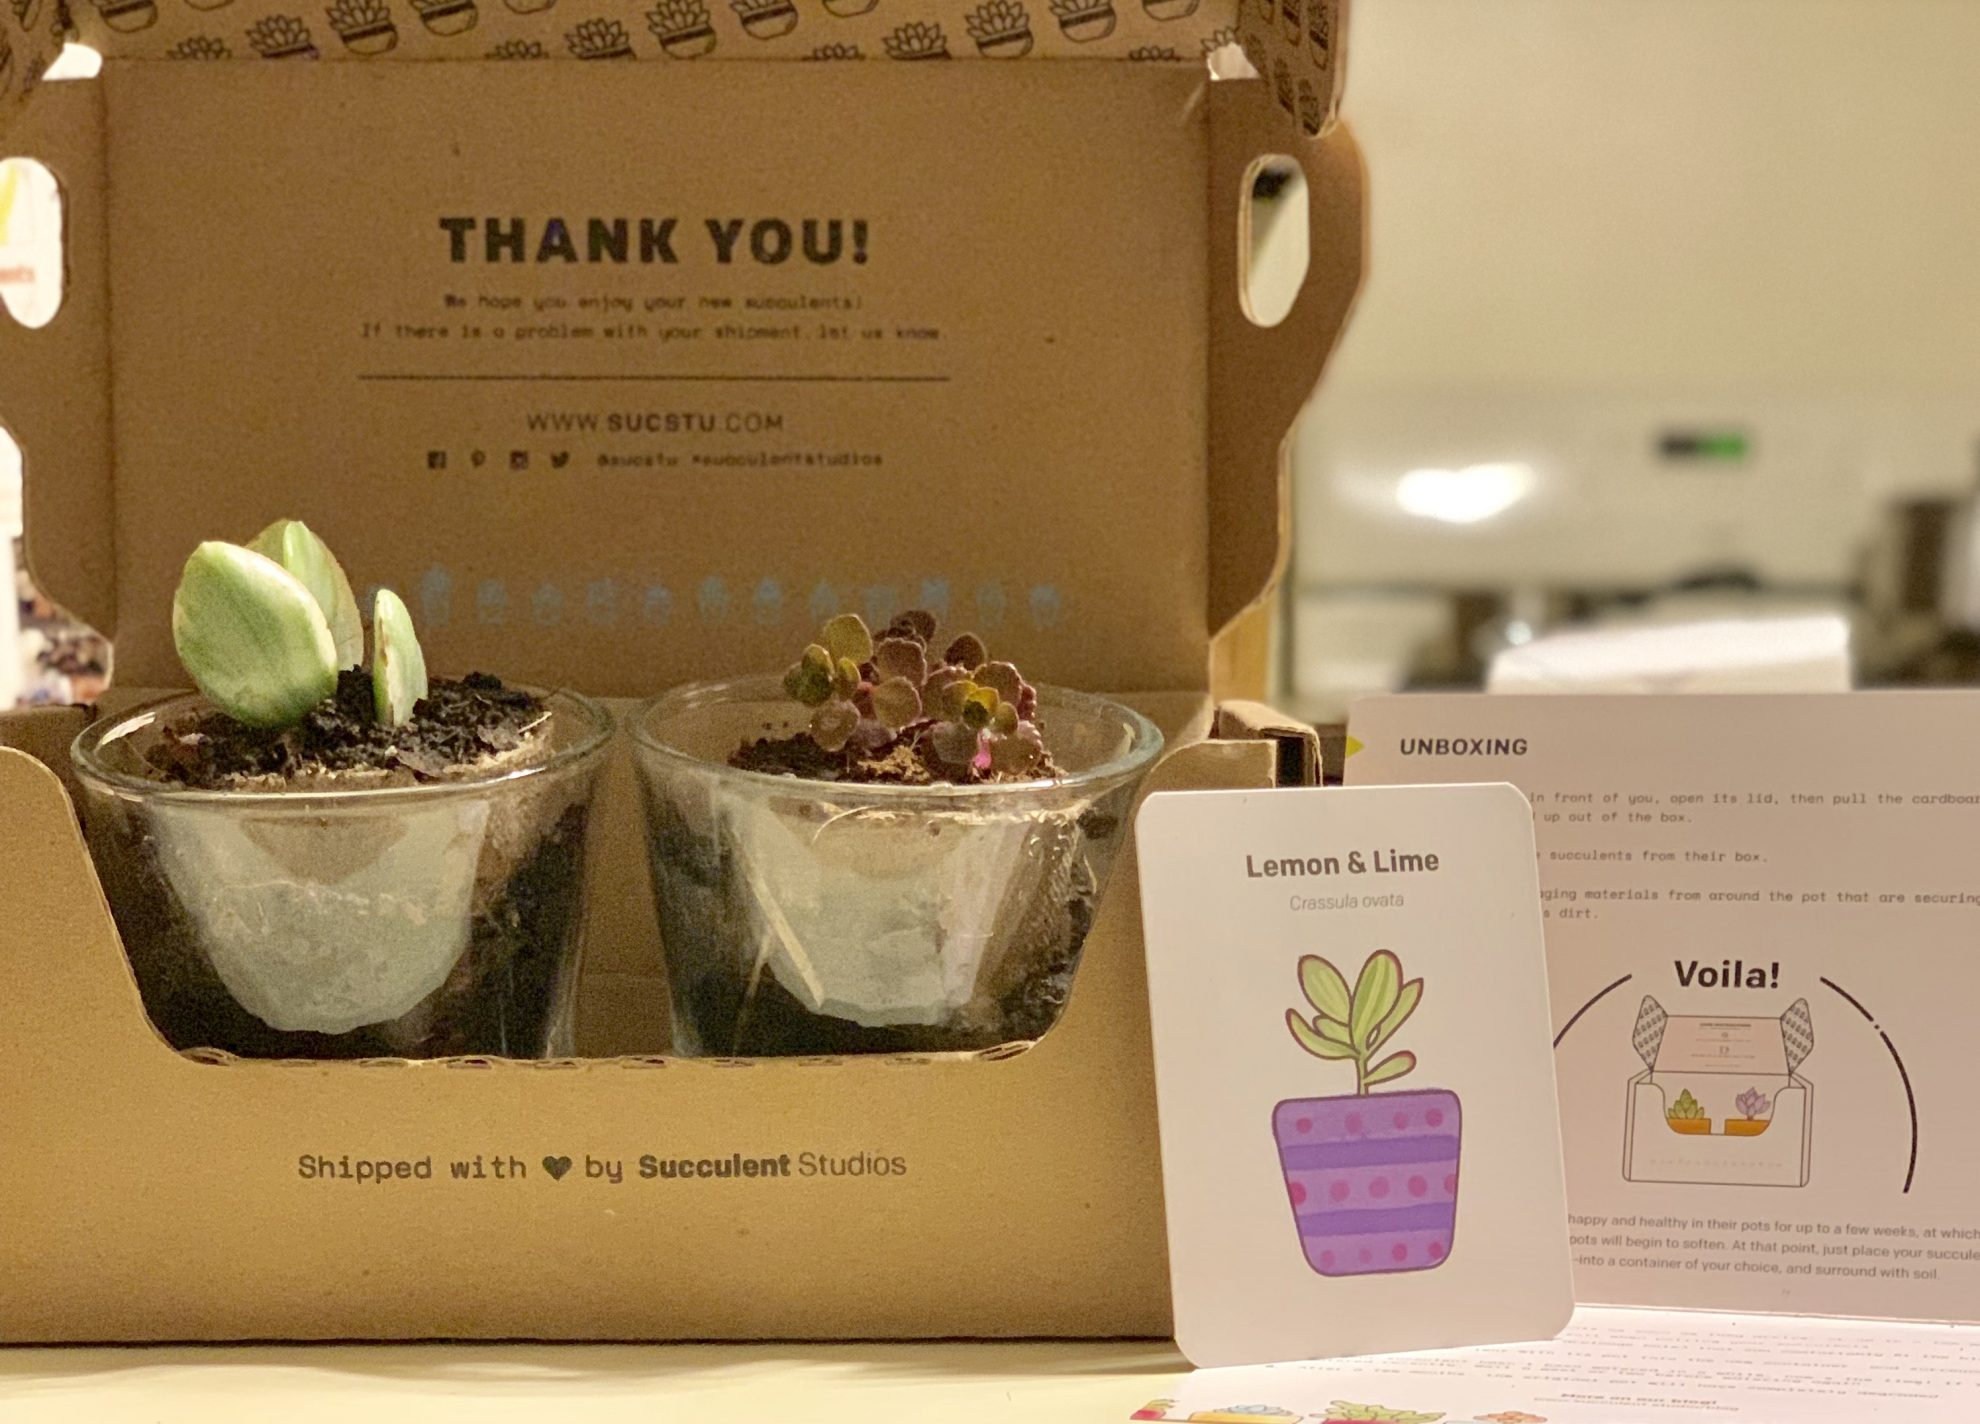 One of my favorite ways to get succulents is delivered right to your door! FREE Shipping!